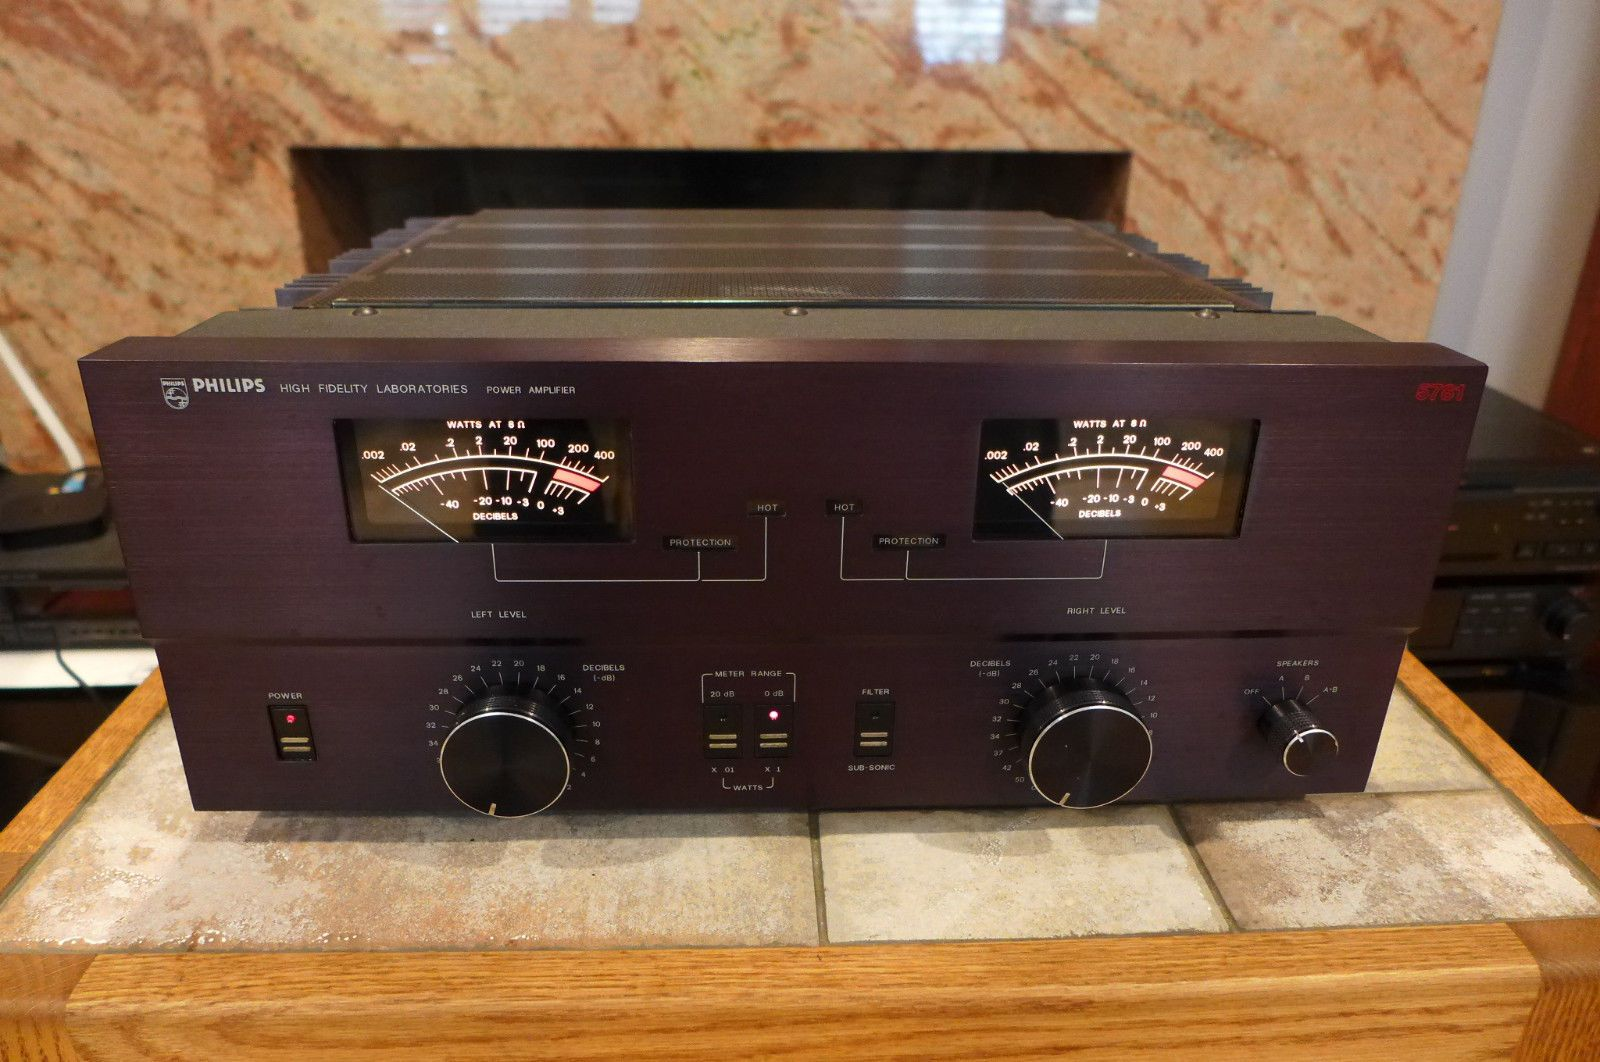 Rare Vintage Philips 5781 High Fidelity Lab Stereo Power Amplifier Mic Preamplifier Electronicslab Made In Usa Ebay